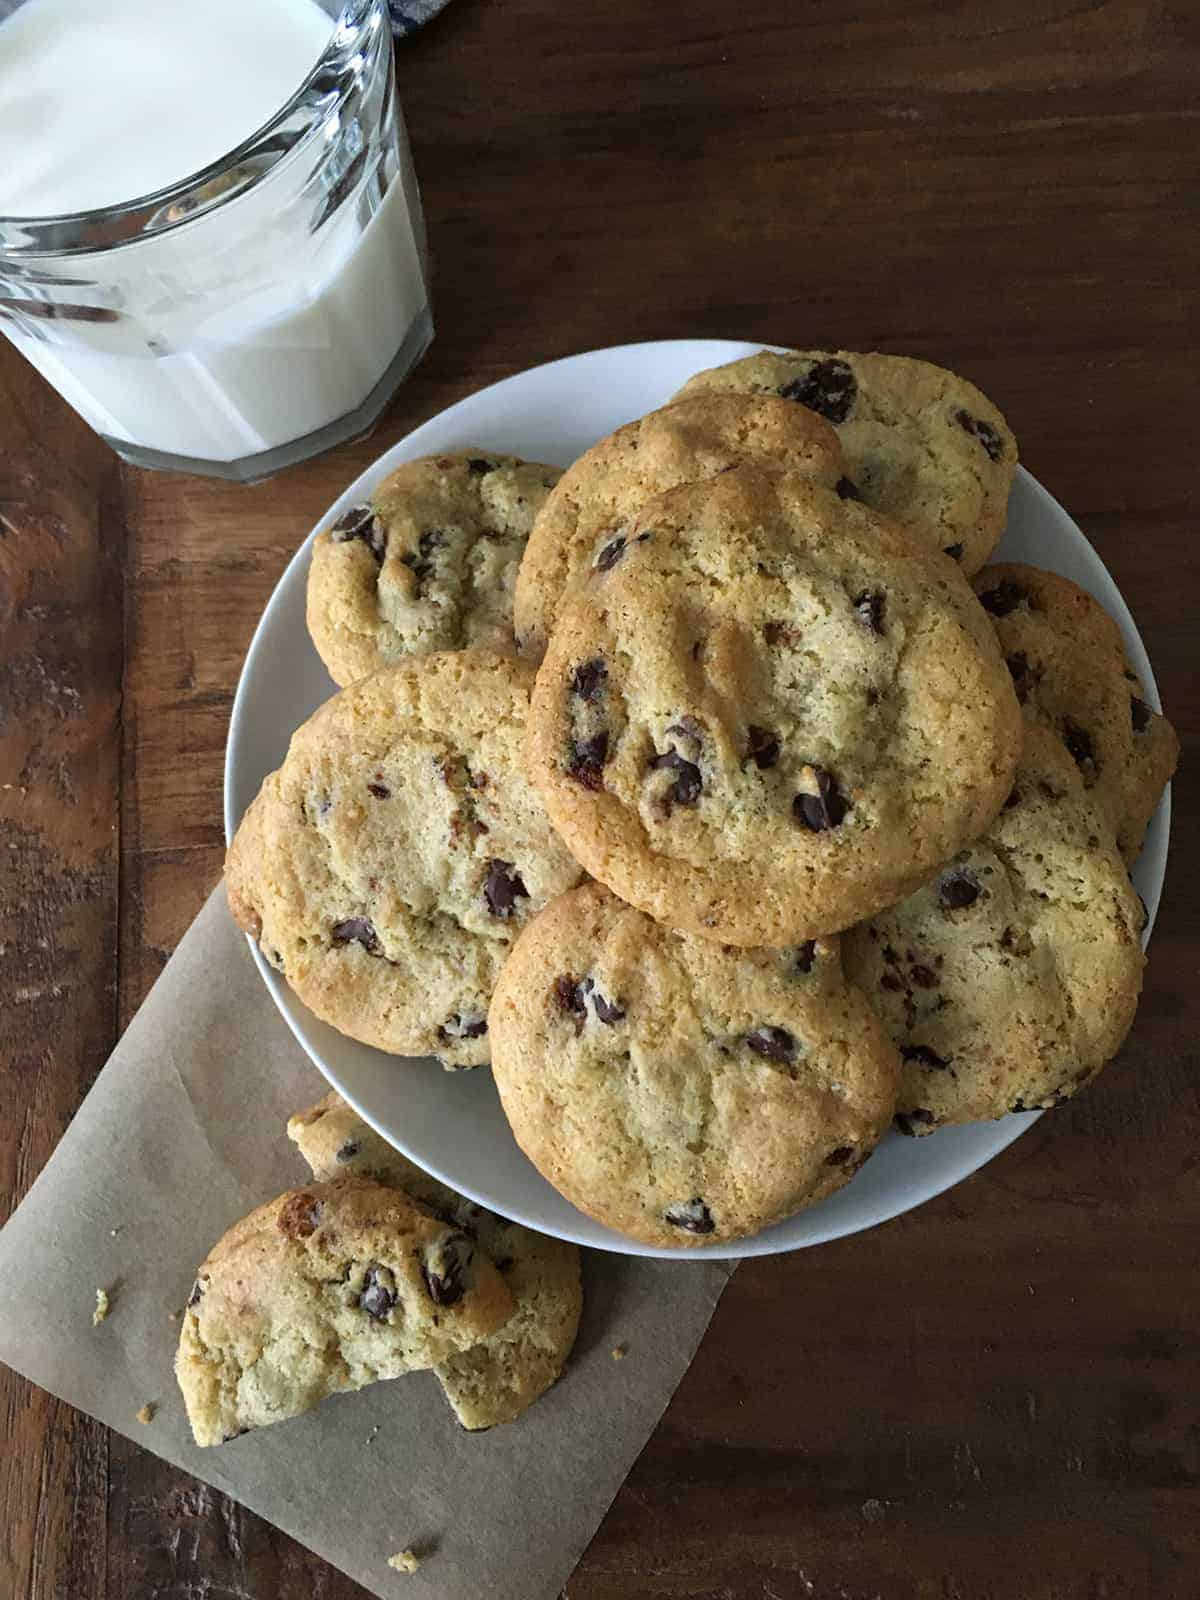 Gluten-free chocolate chip cookies with a glass of milk on a brown table